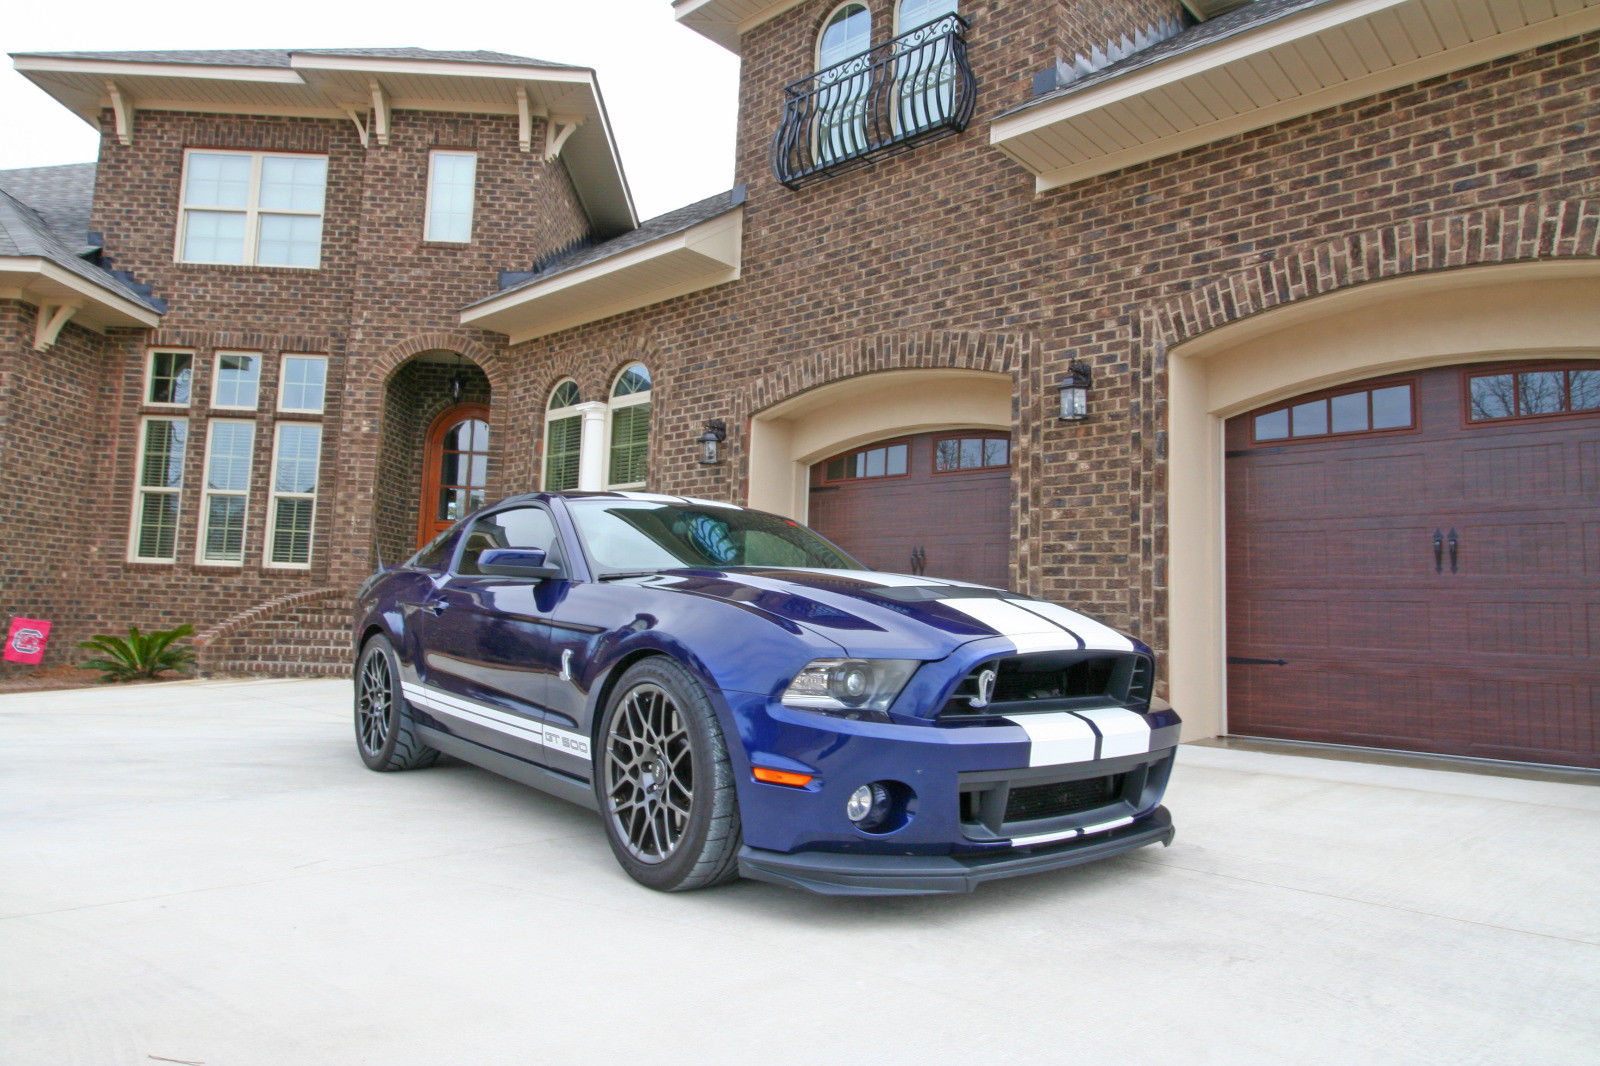 Awesome 2010 Ford Mustang Shelby Gt500 751rwhp 2018 2019